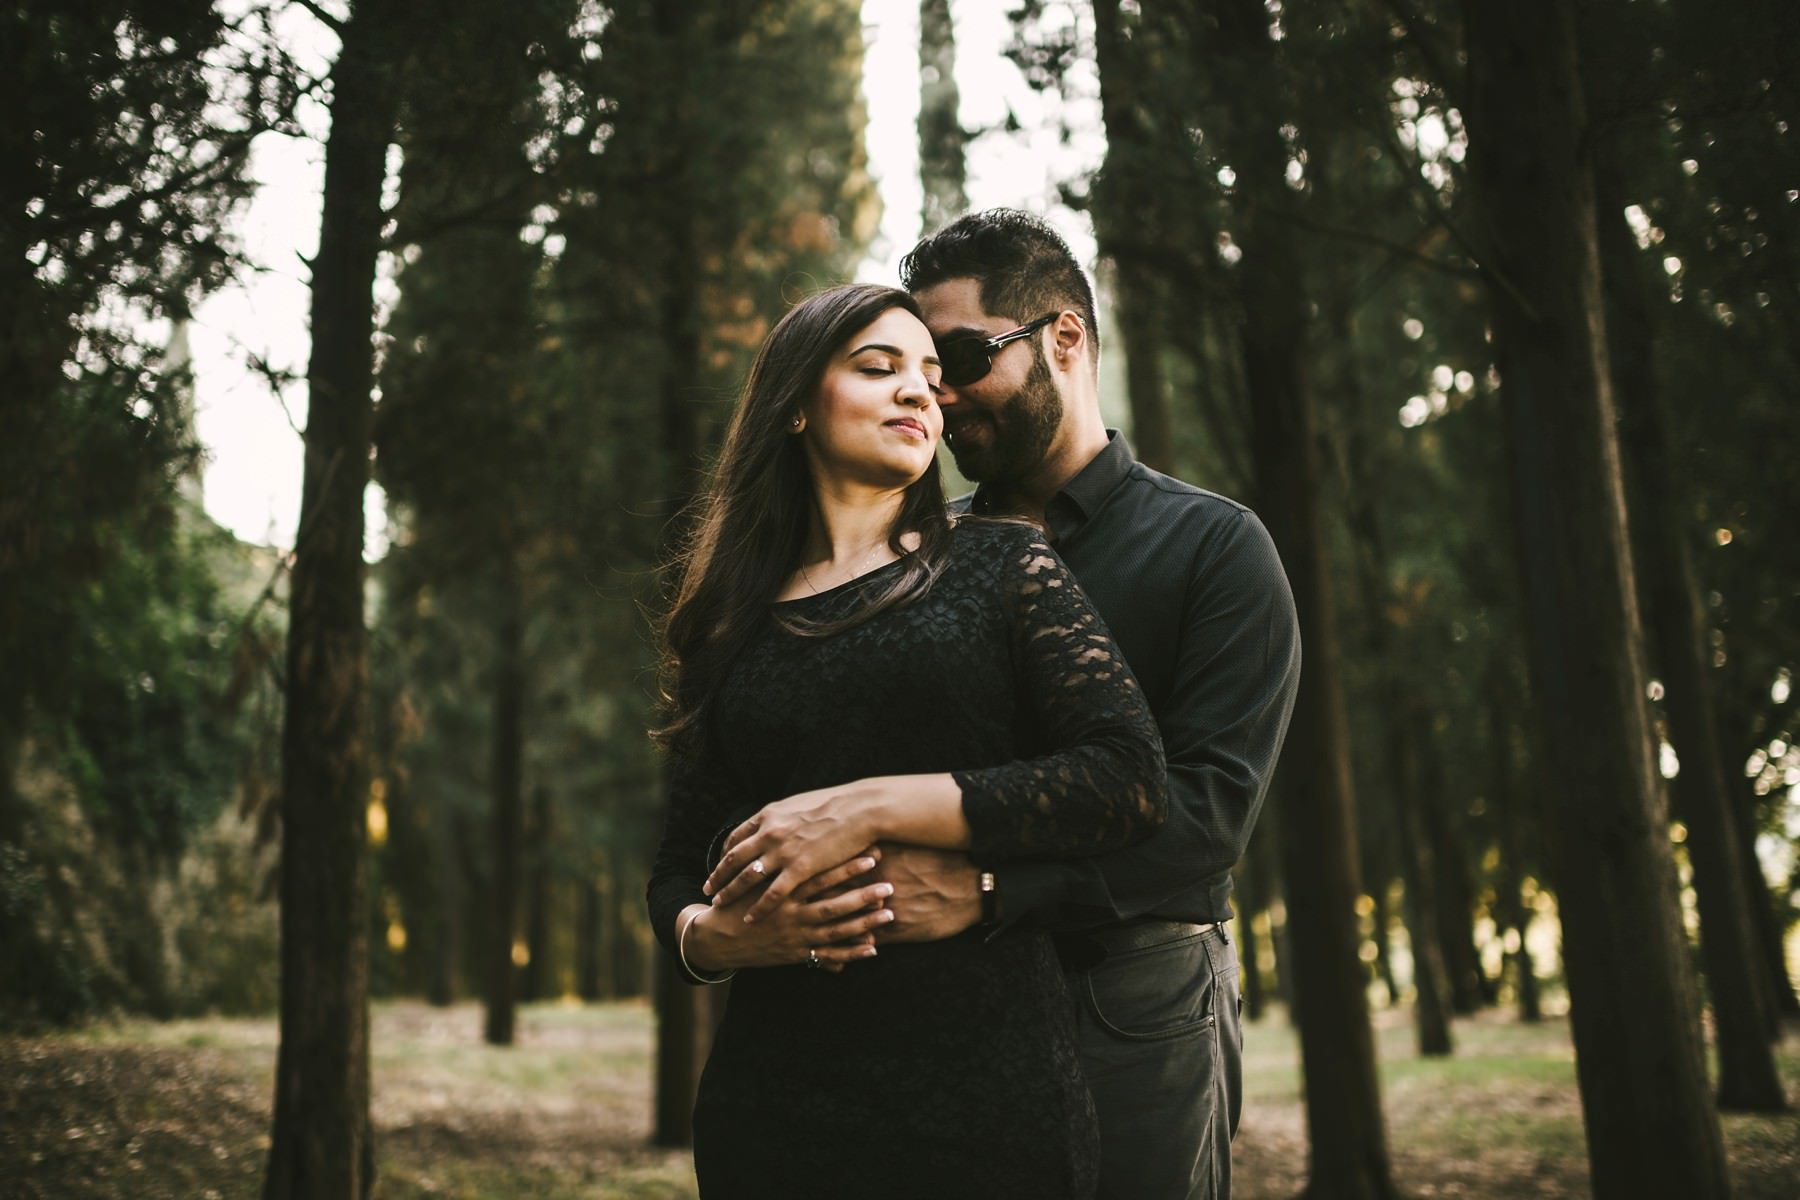 Romantic engagement portrait session in the coutryside of Florence near Piazzale Michelangelo